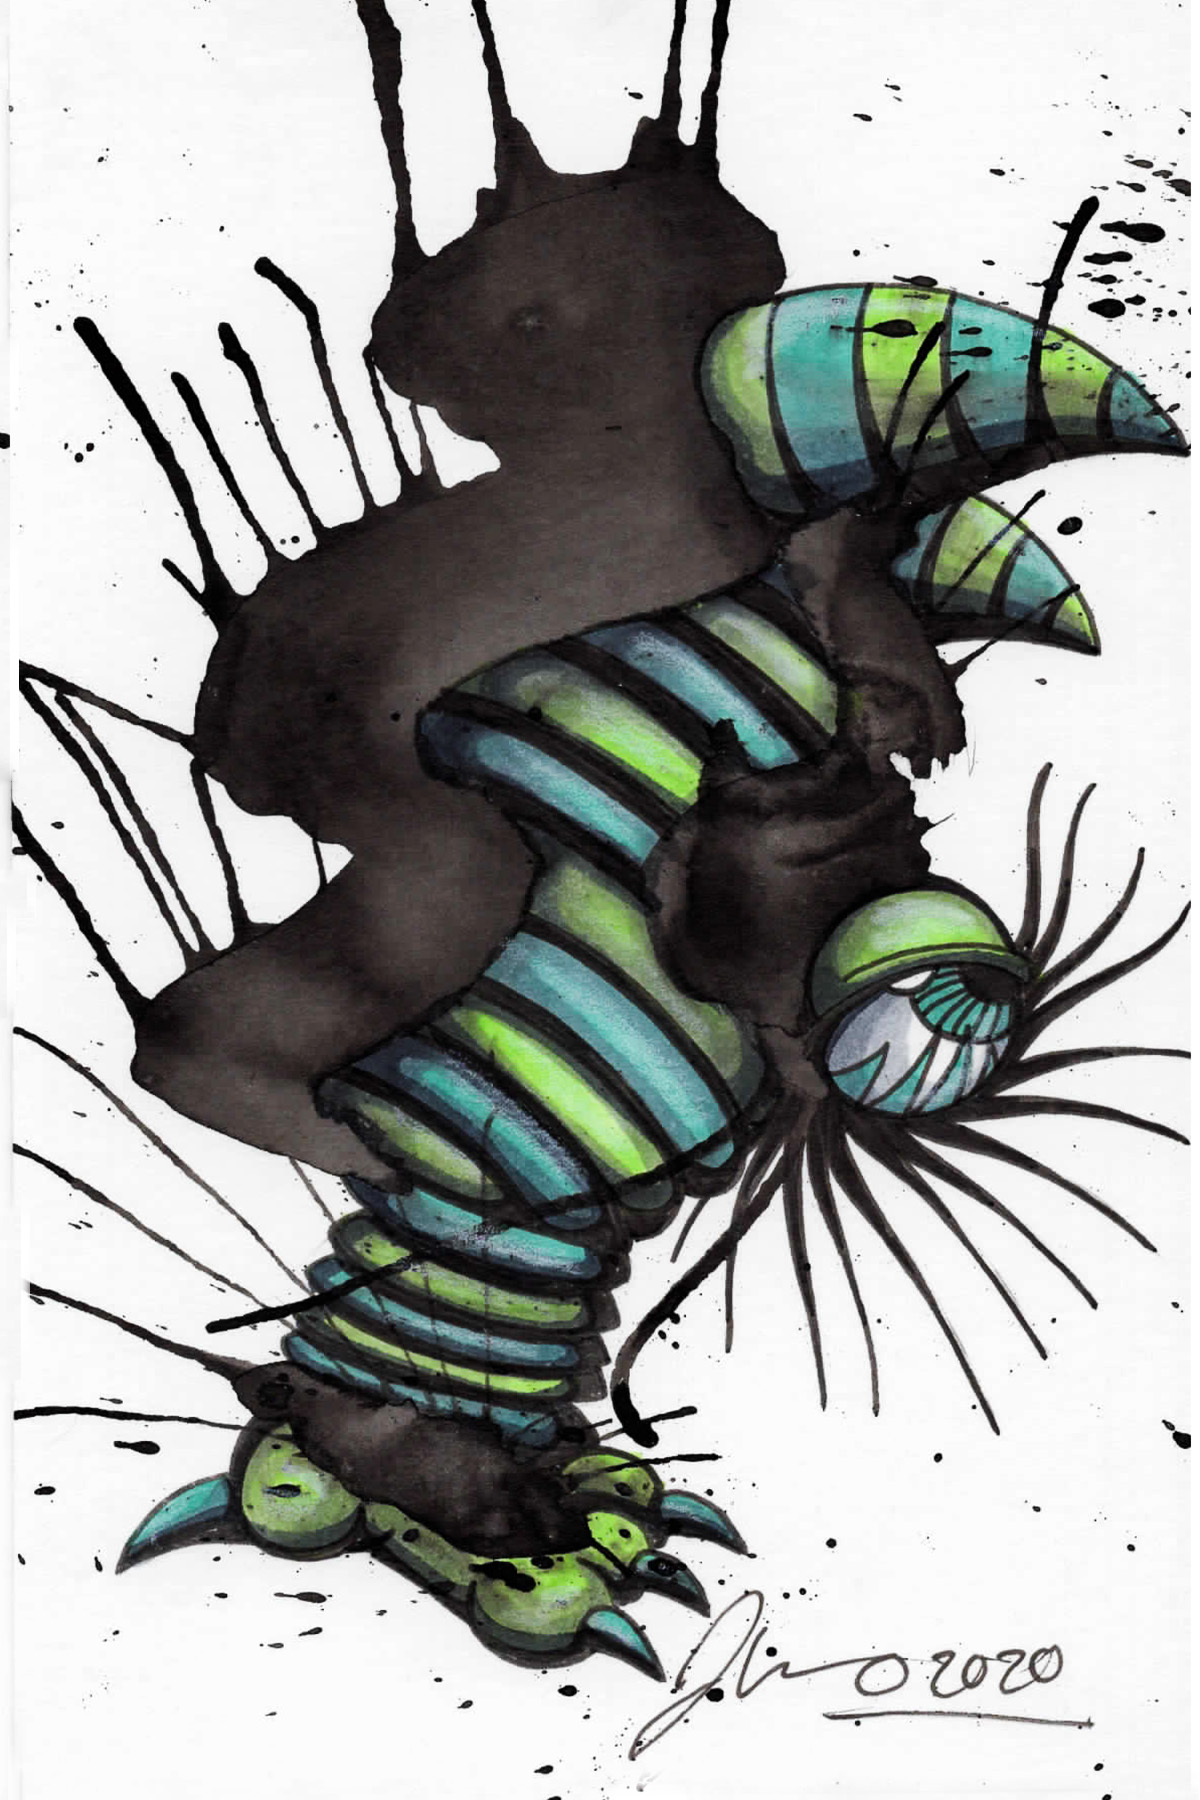 Inkblot Monster (The Smalls) #6